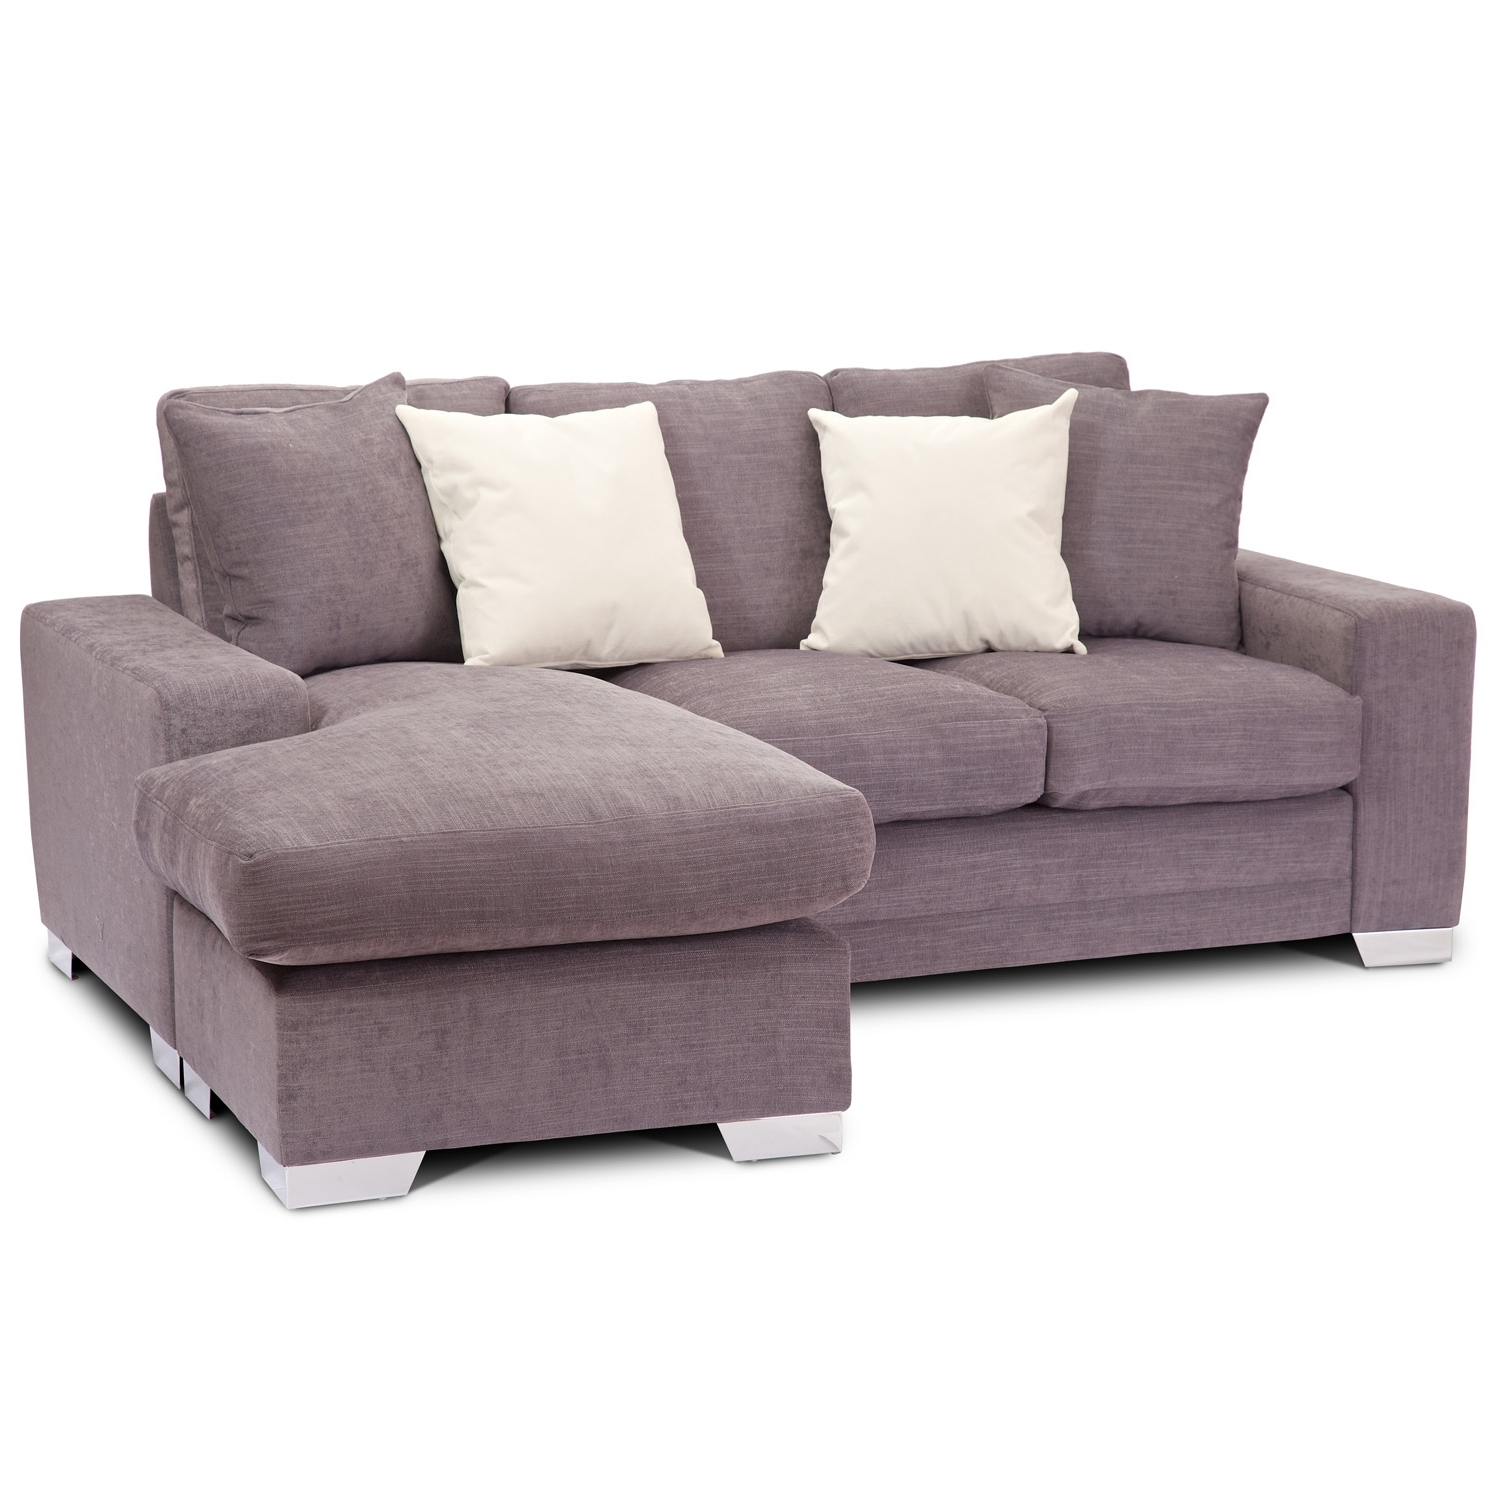 Cheap Futons For Sale Pertaining To Sofa Chaise Convertible Beds (View 11 of 15)